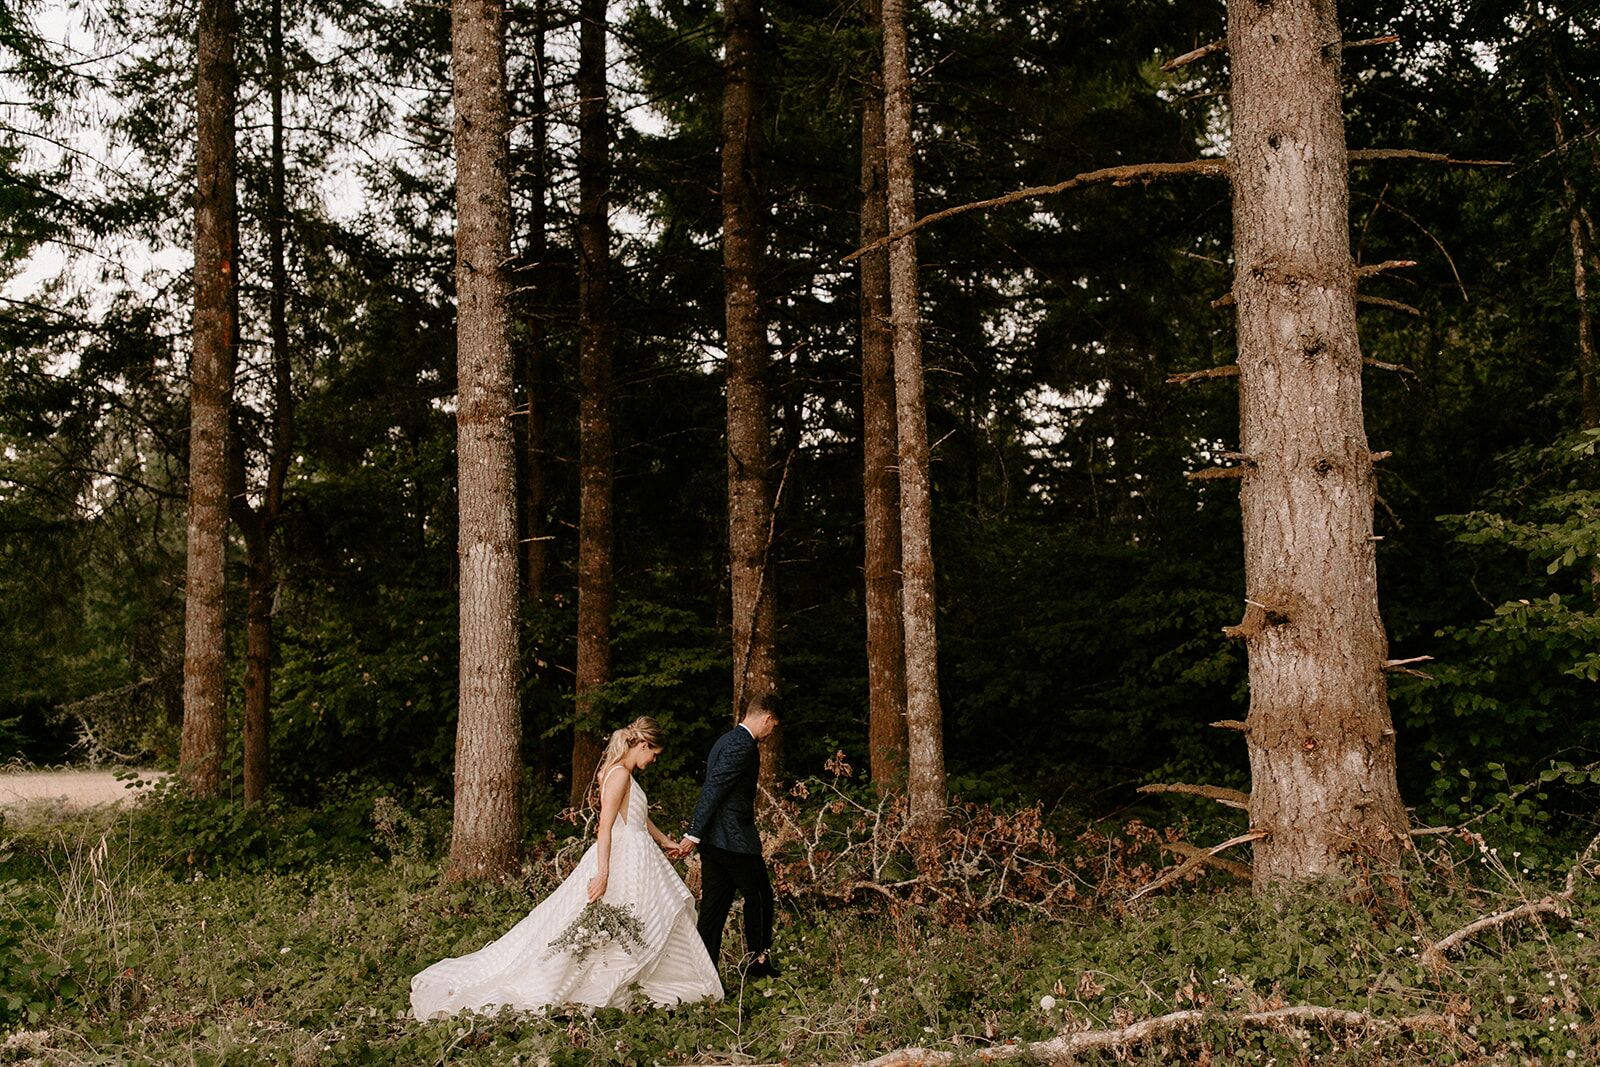 Bridalbliss.com | Portland Wedding | Oregon Event Planning and Design | Dawn Charles